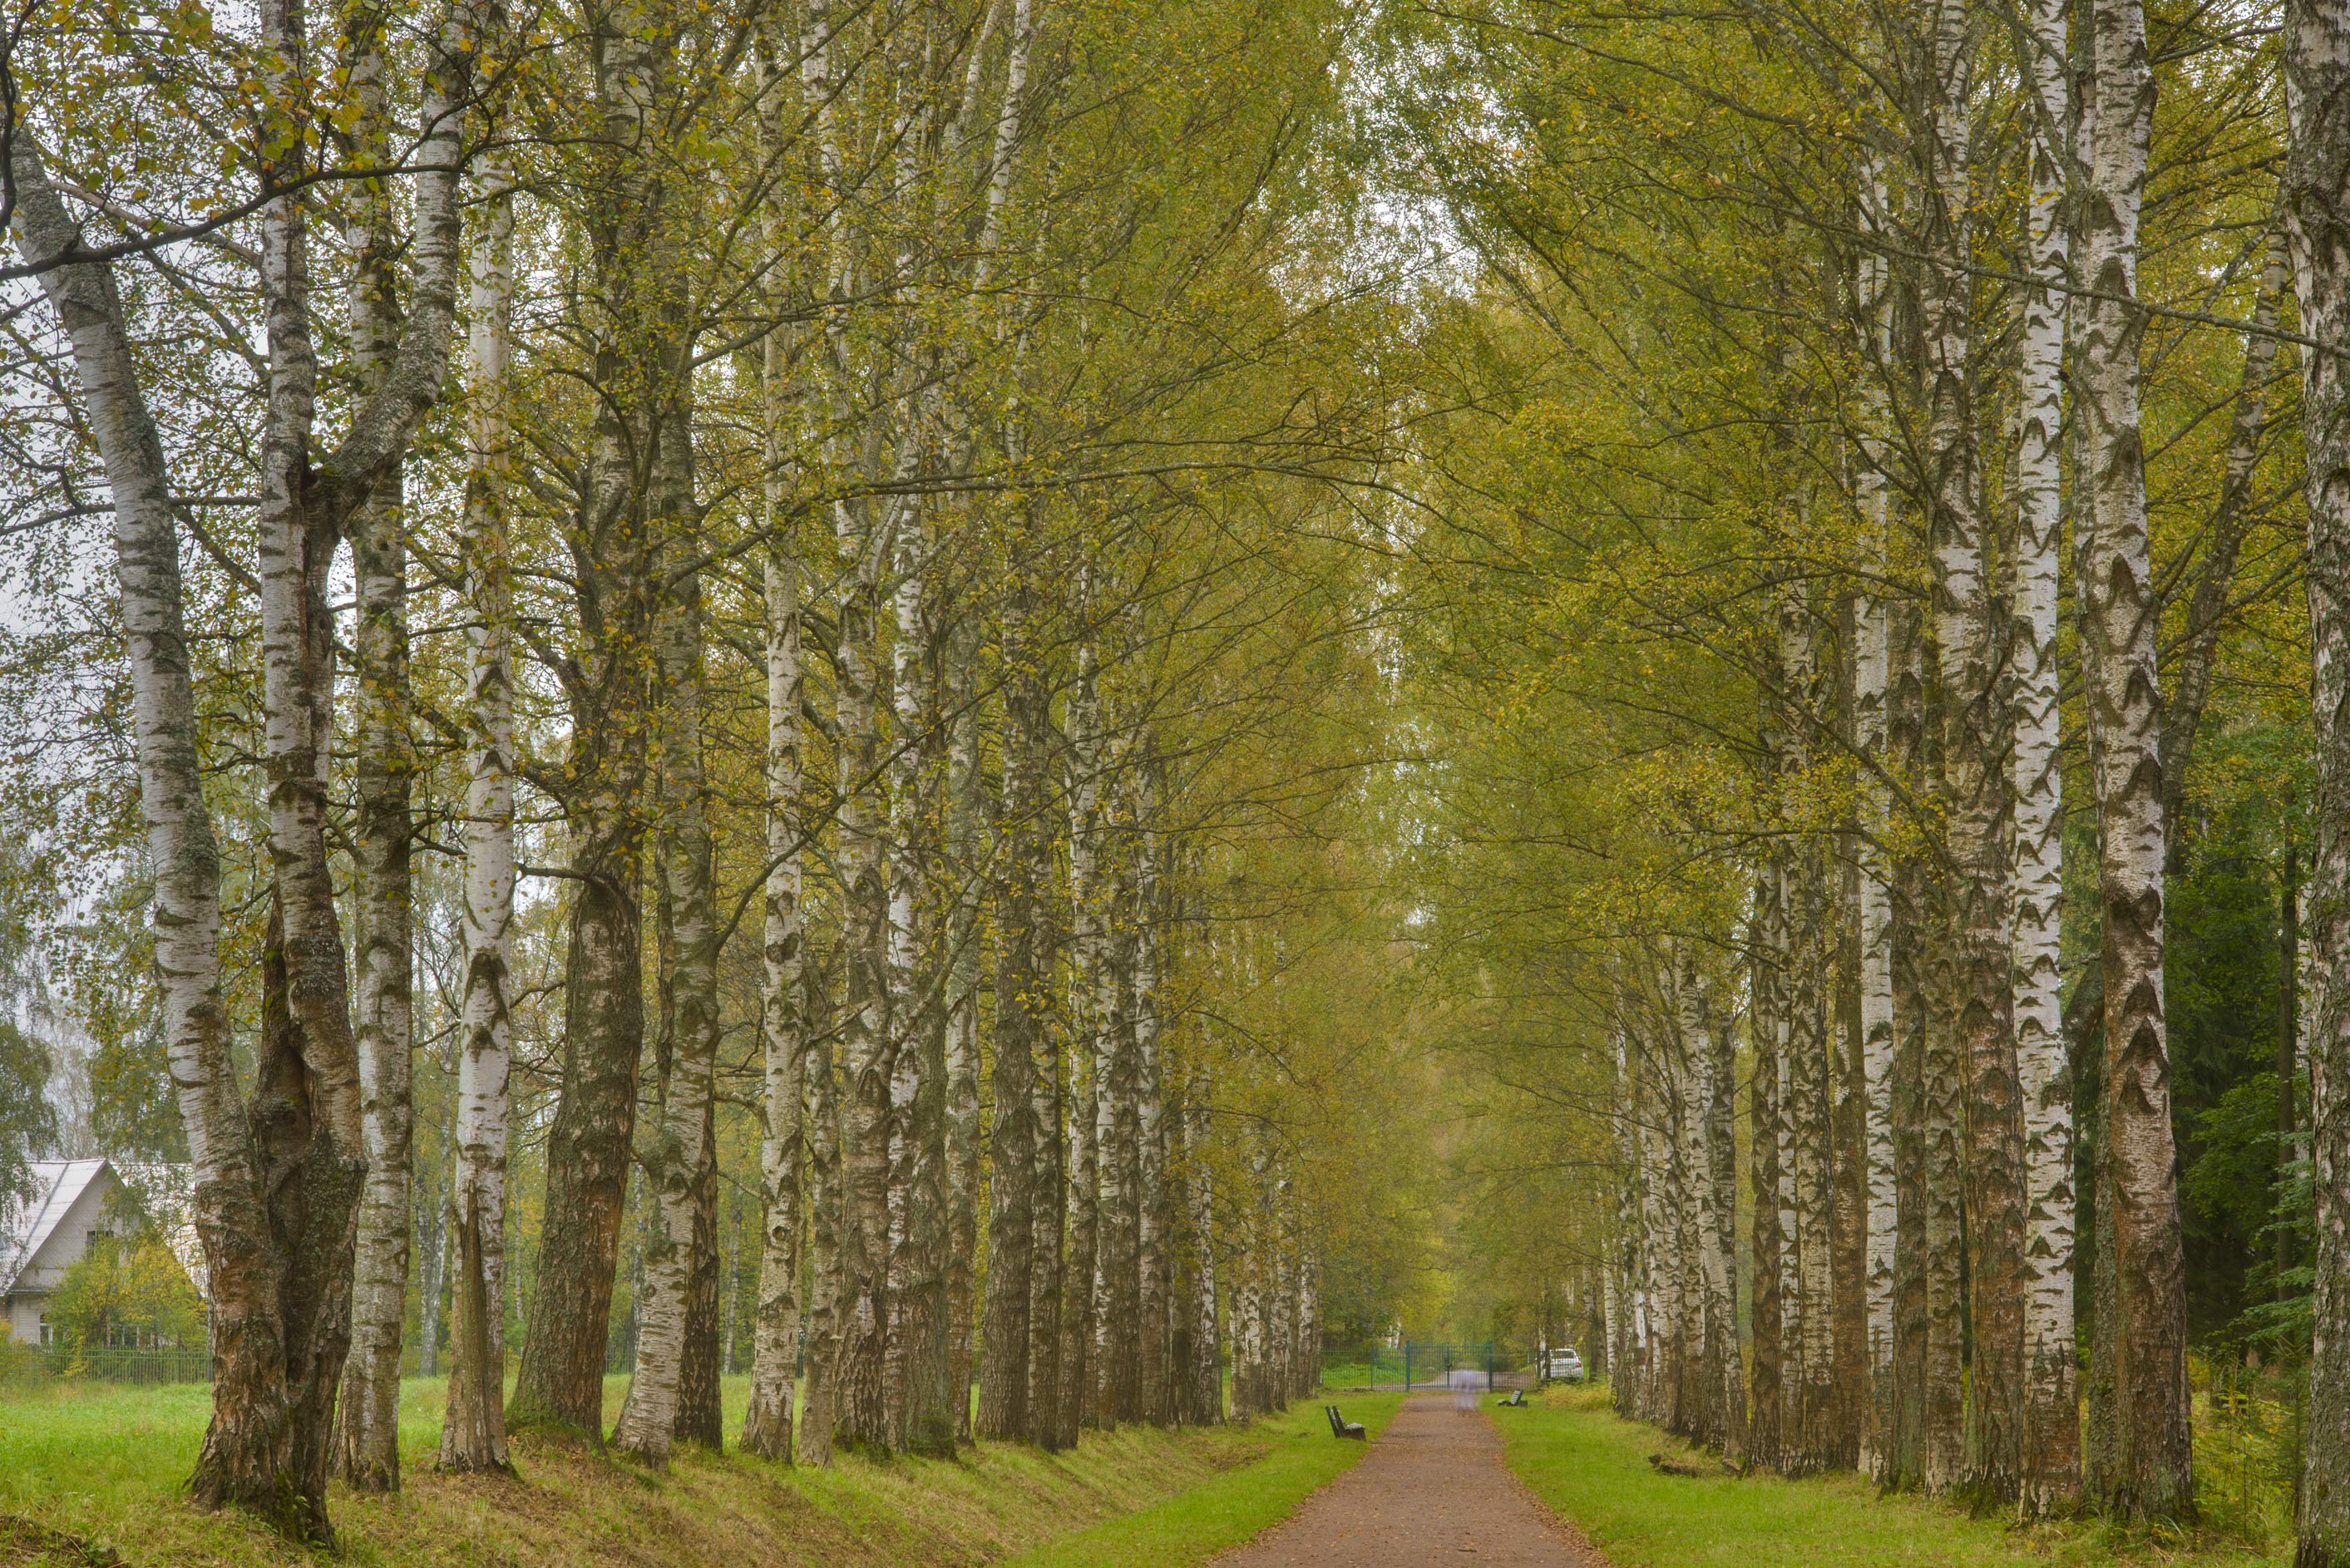 Krasnogo Bugra Alley with birch trees in Pavlovsk...a suburb of St.Petersburg, Russia